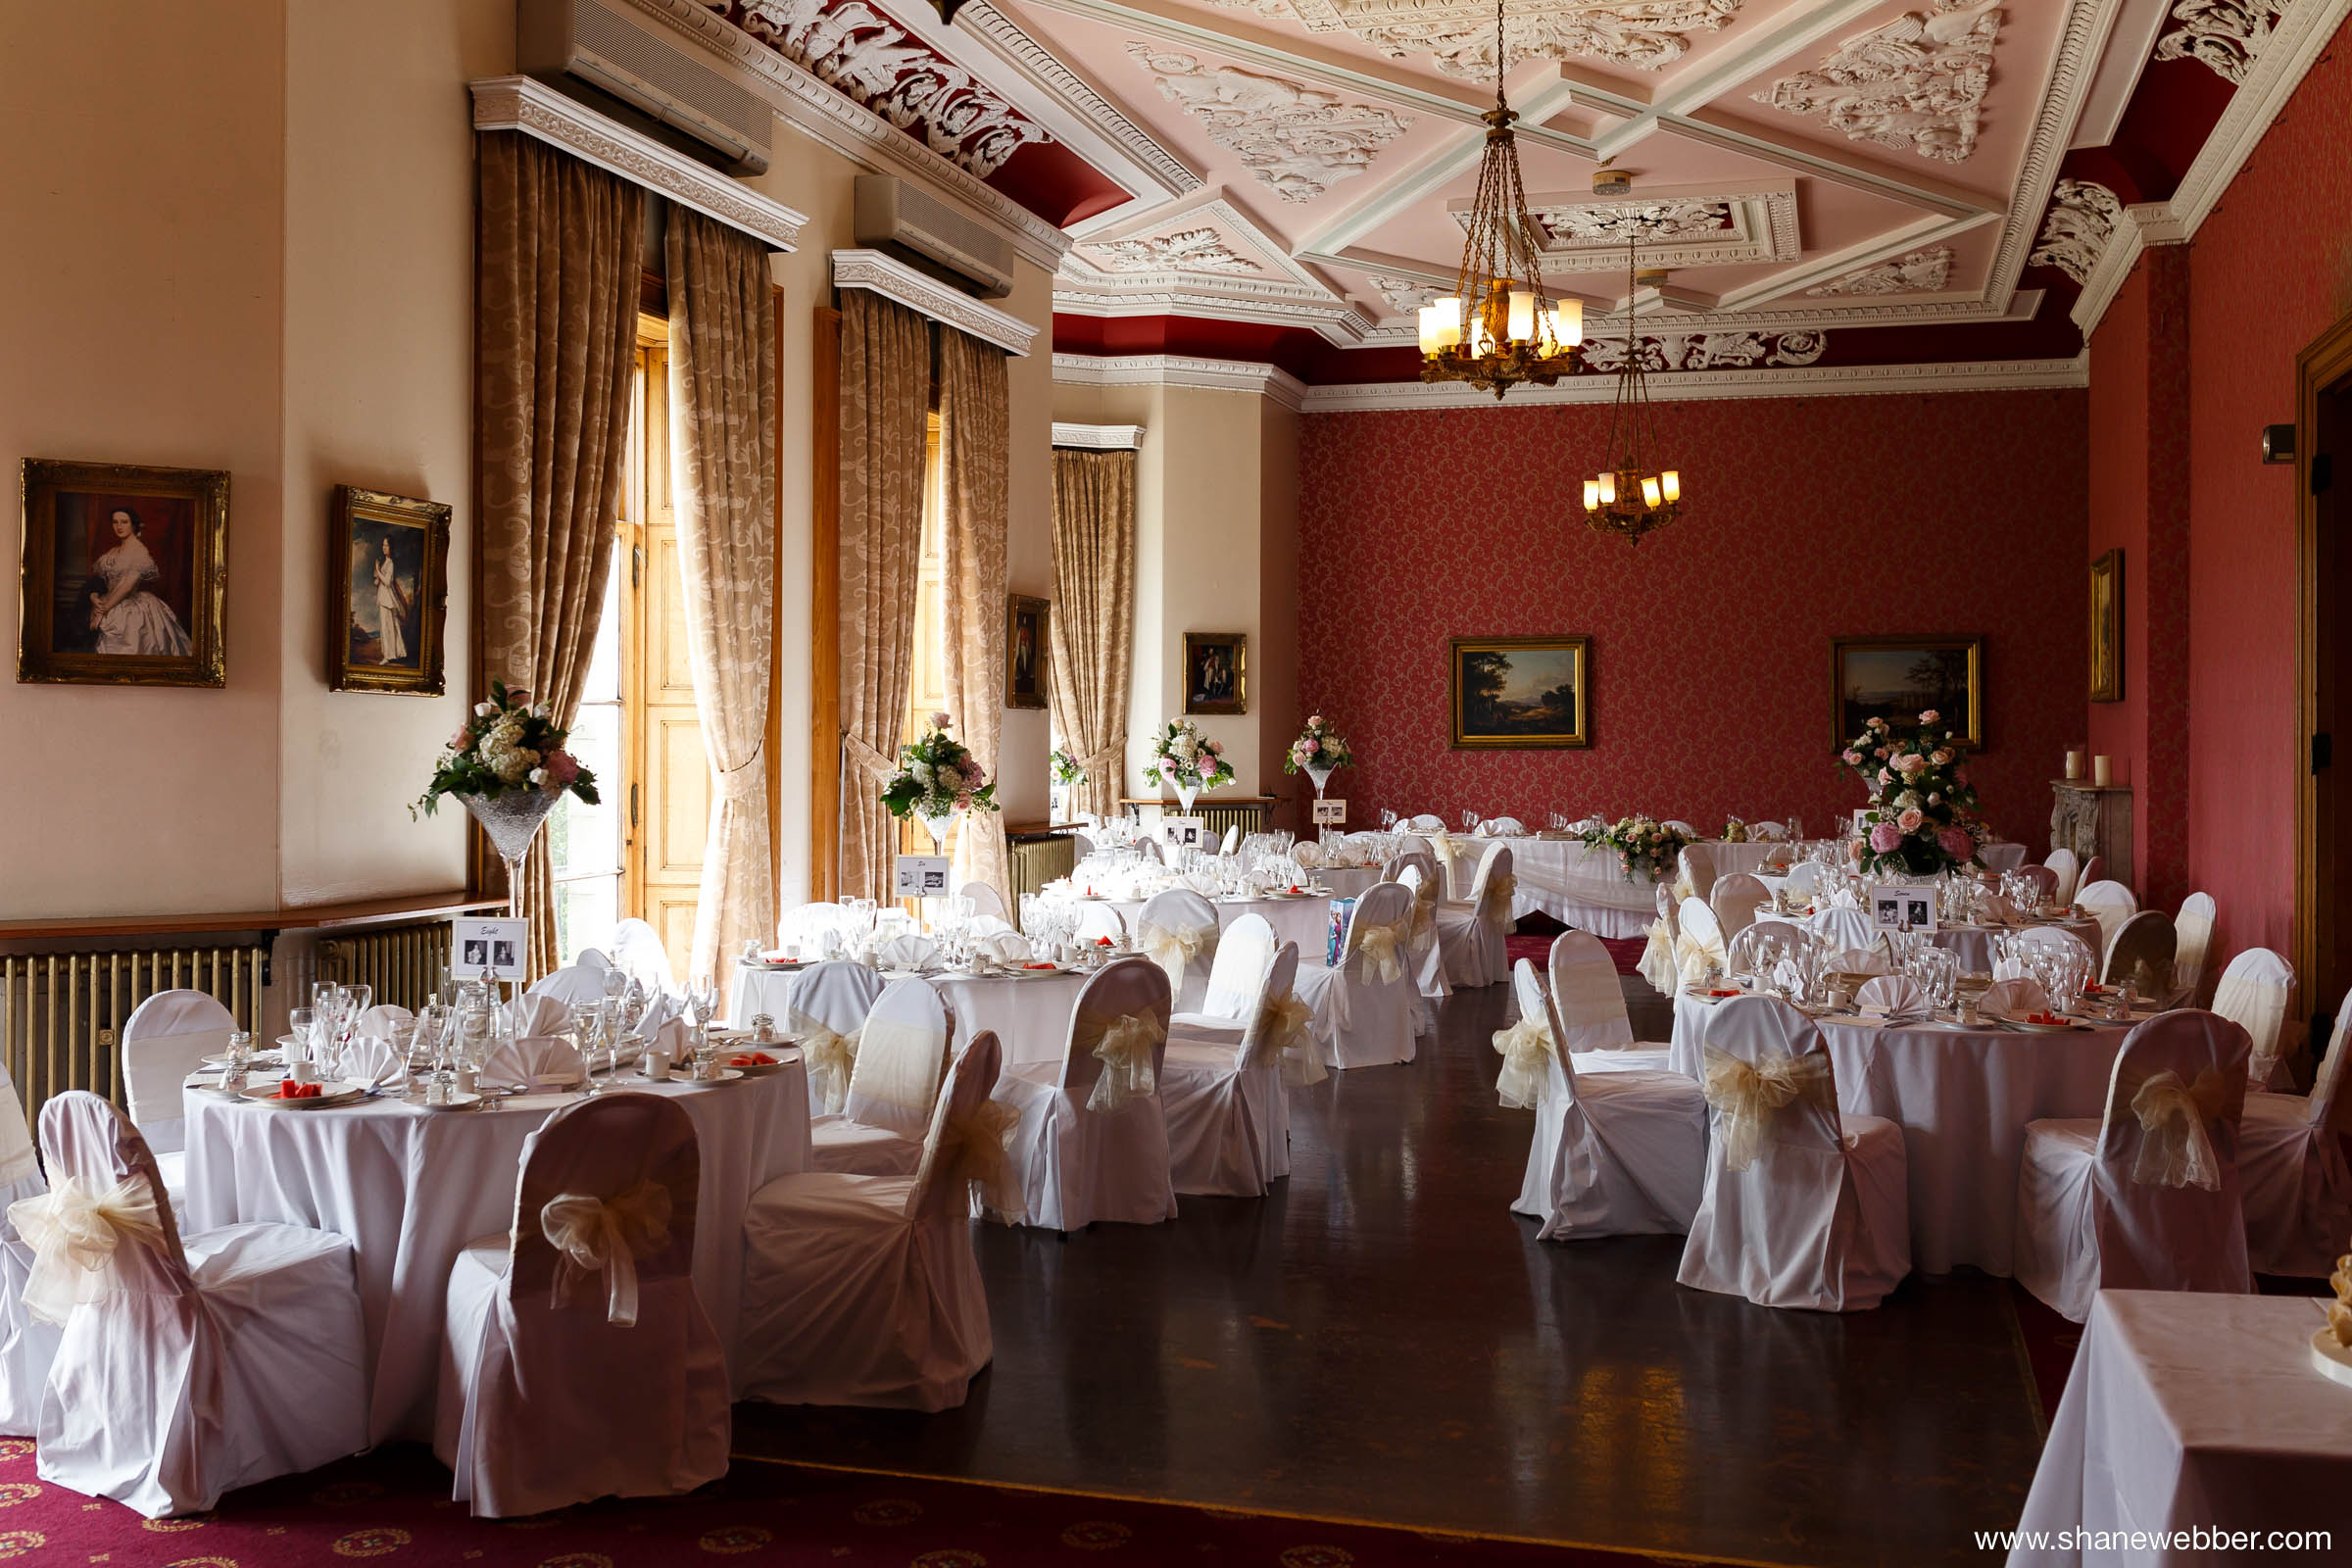 Haigh Hall Wedding Reception